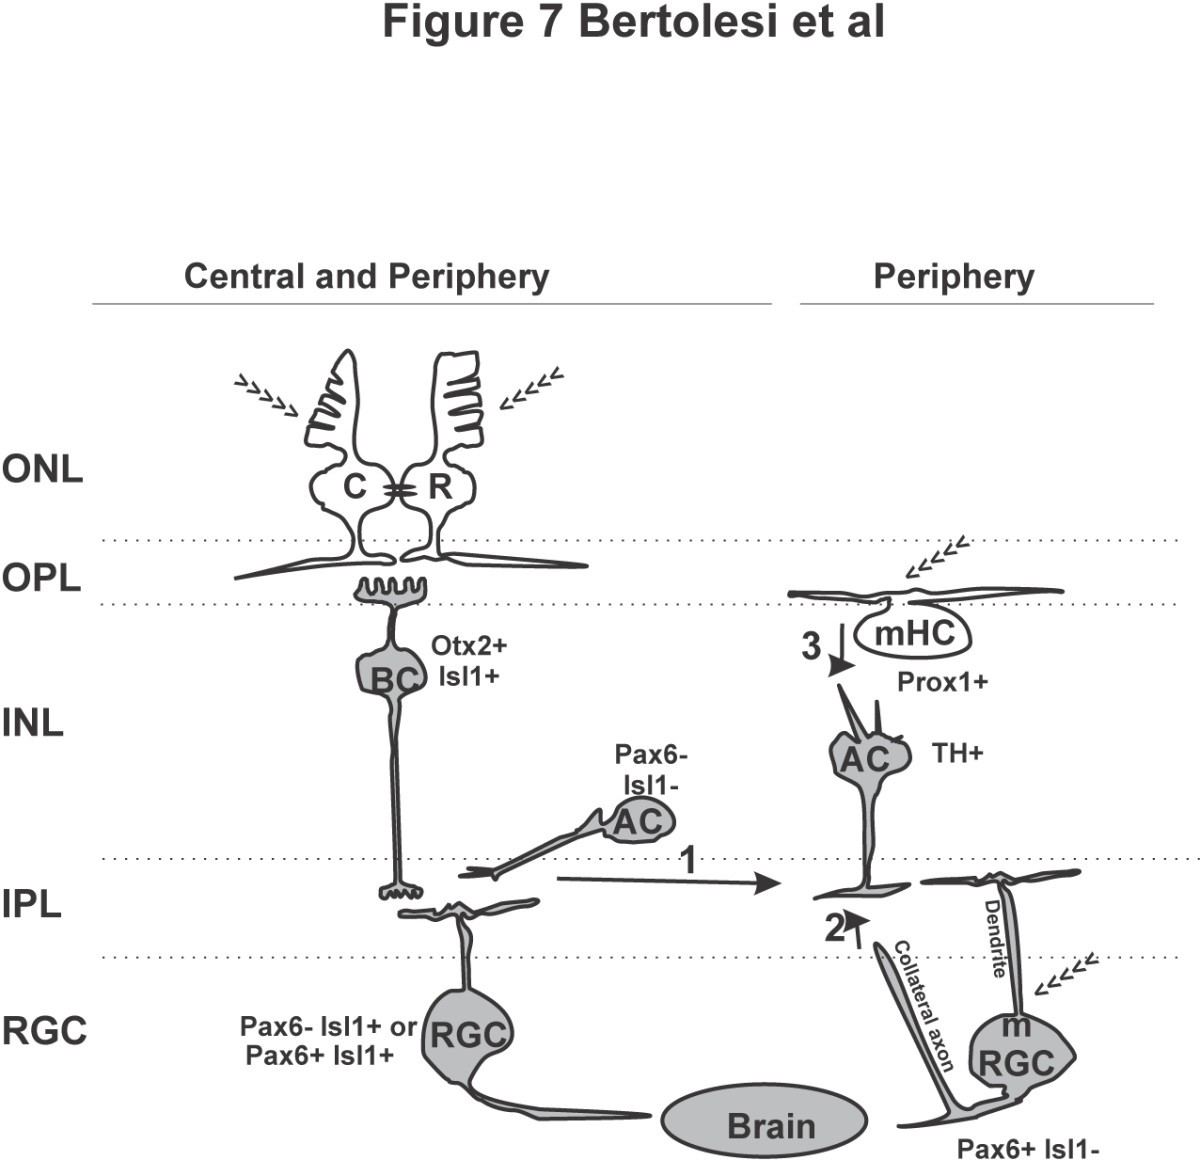 Wiring The Retinal Circuits Activated By Light During Early Oliver 1600 Diagram Figure 7 Neuronal Circuit